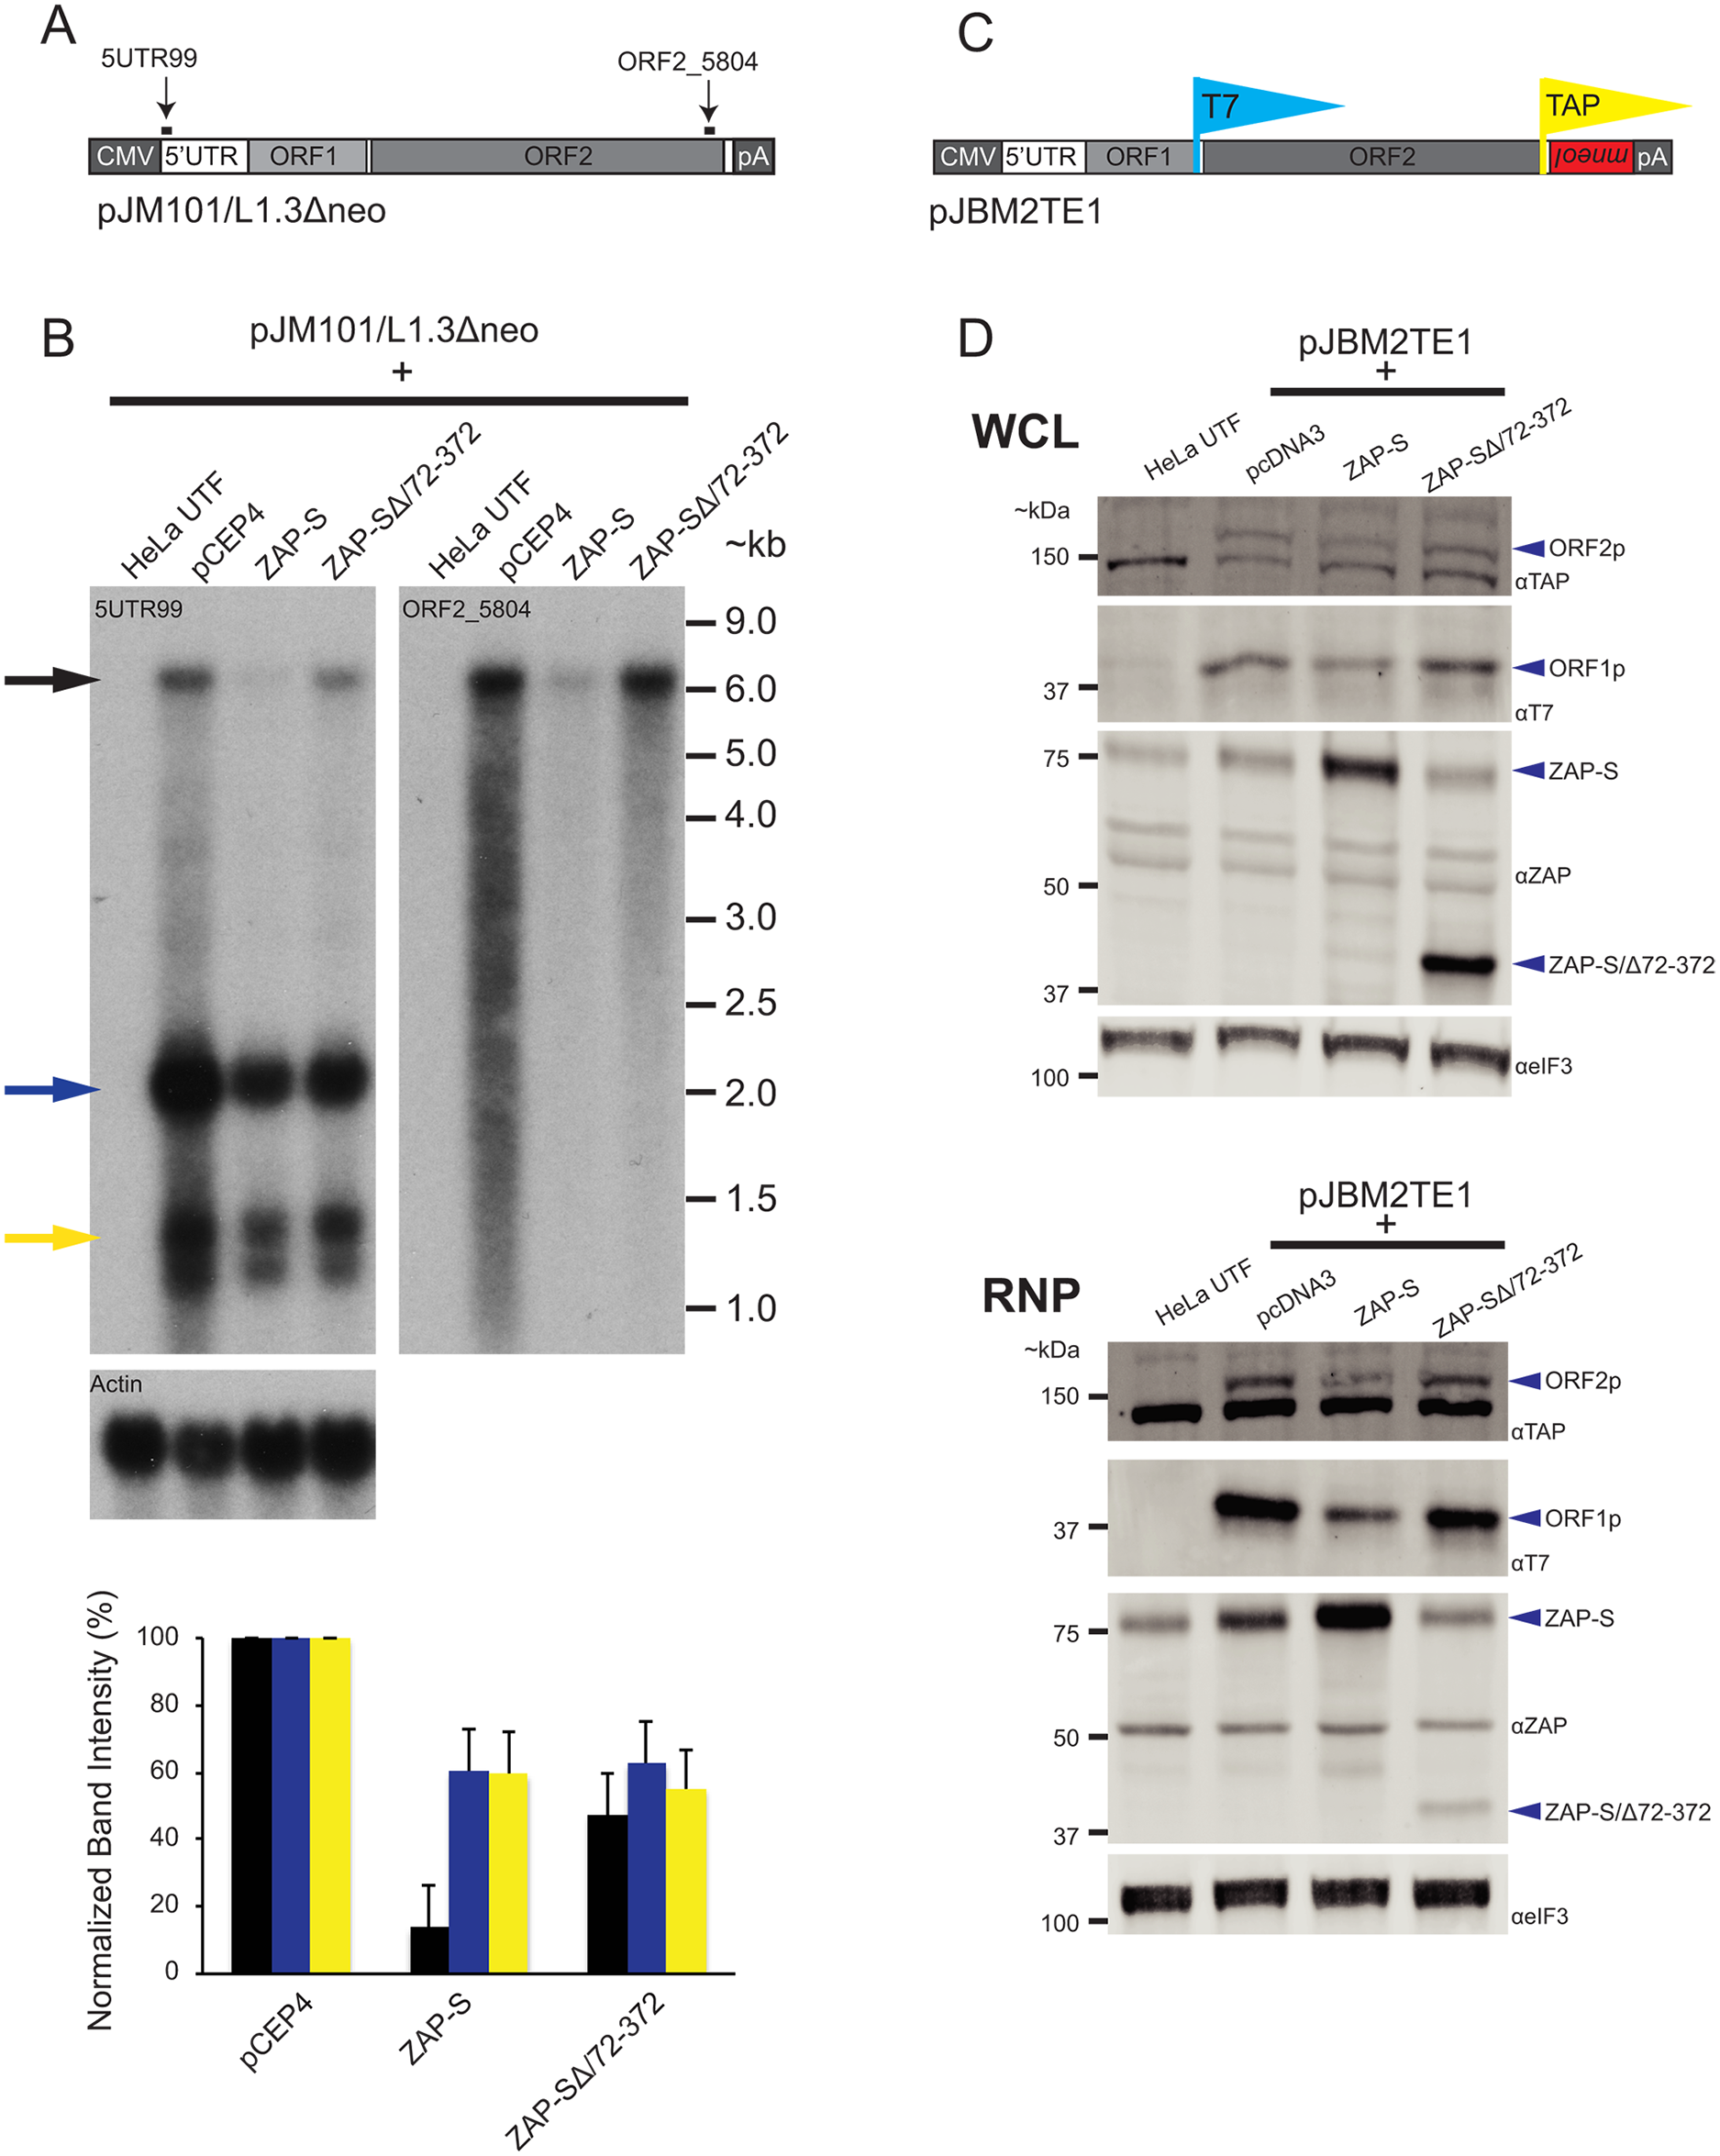 The effect of ZAP-S on L1 RNA and L1 protein expression.